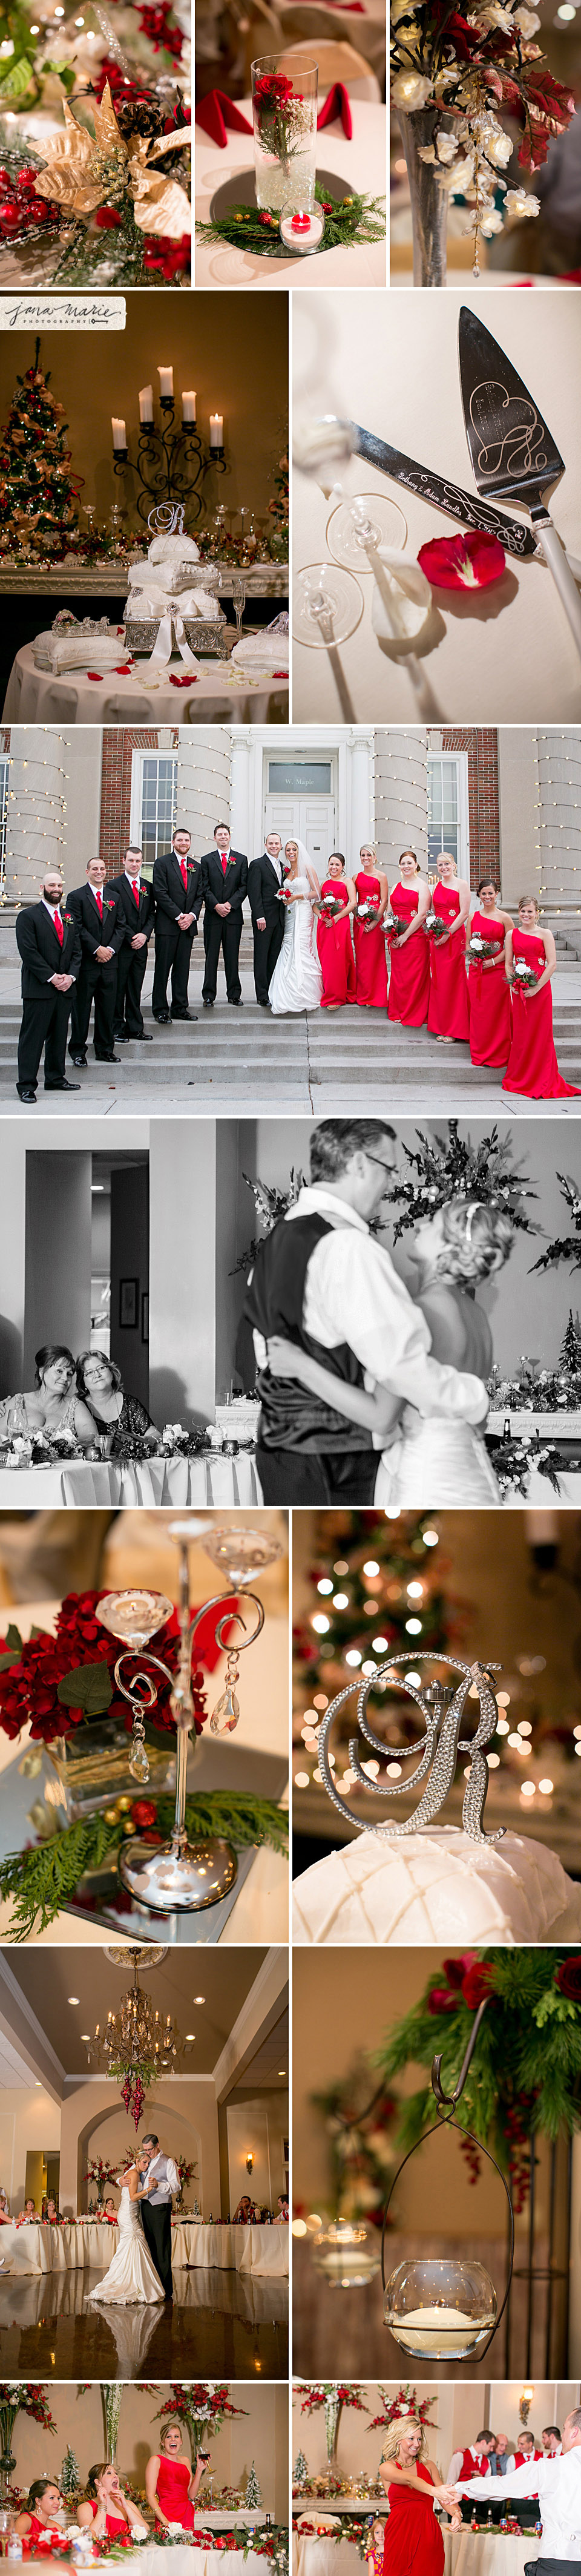 Midwest wedding photographer, Featured images, father daughter dance, bridal party, Jana Marler